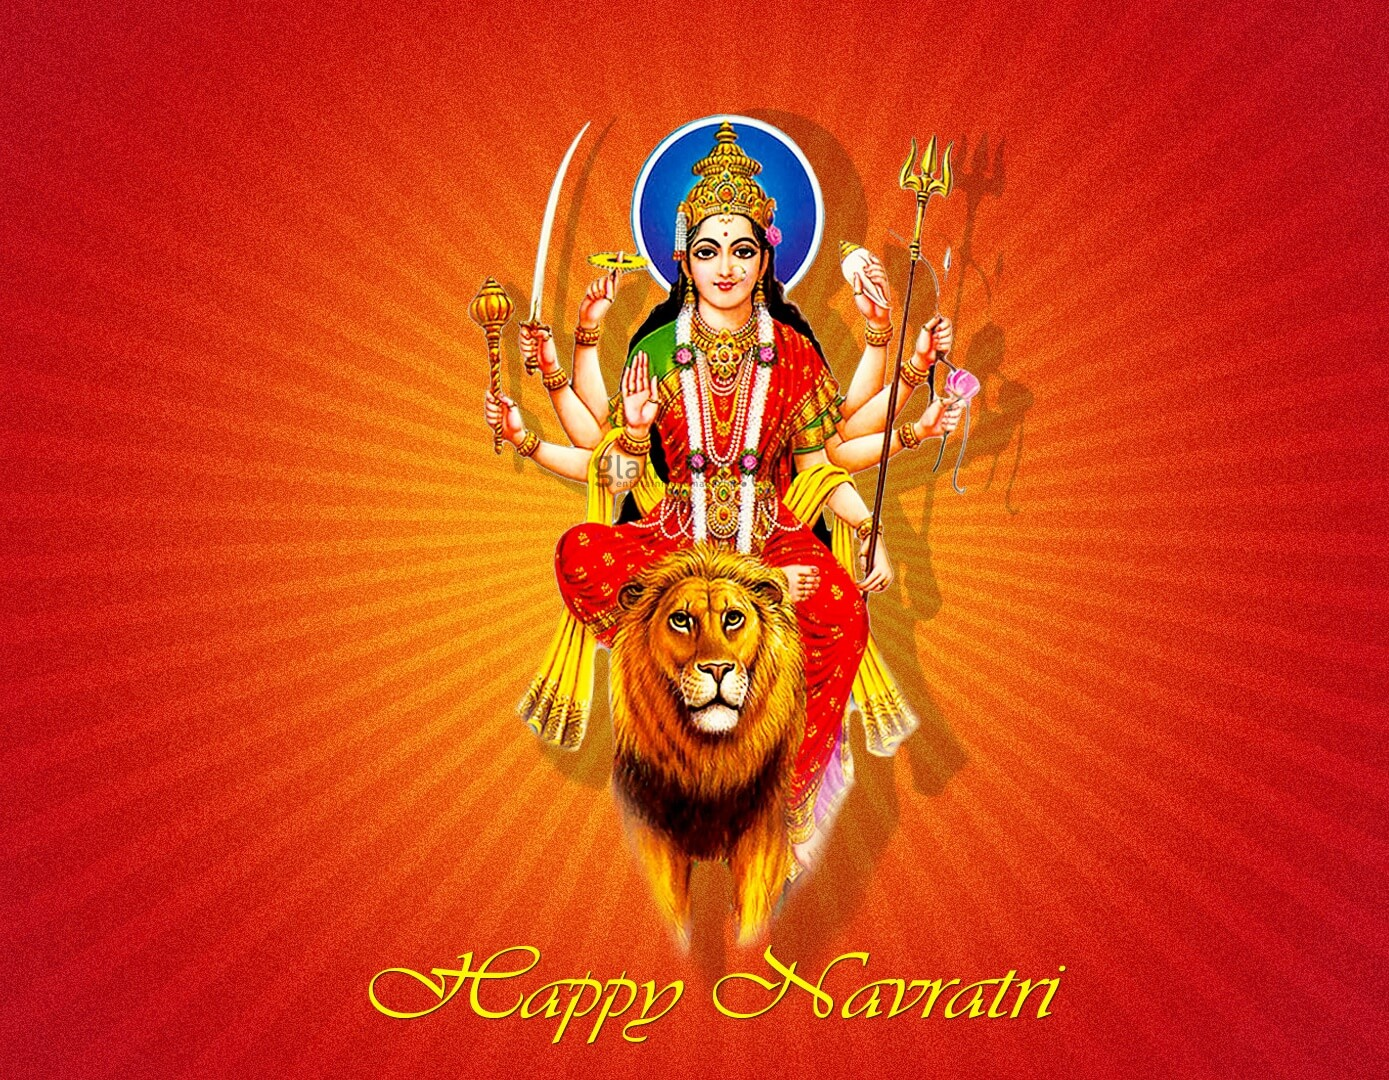 Happy Navratri Wishes, Images, Quotes, Sms, HD Wallpapers